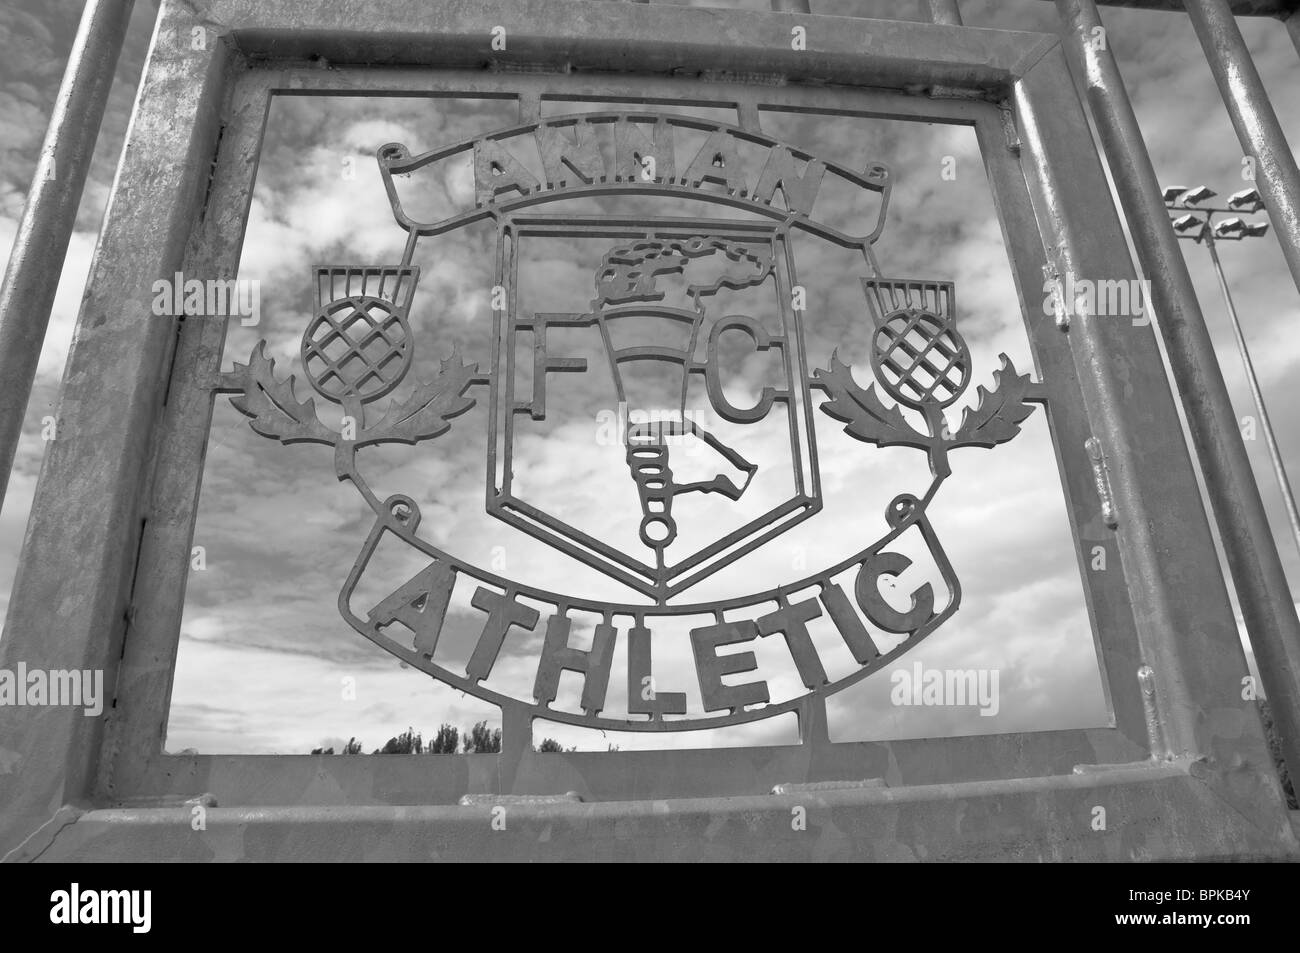 ANNAN ATHLETIC FOOTBALL CLUB METAL PLAQUE BLACK AND WHITE IMAGE - Stock Image